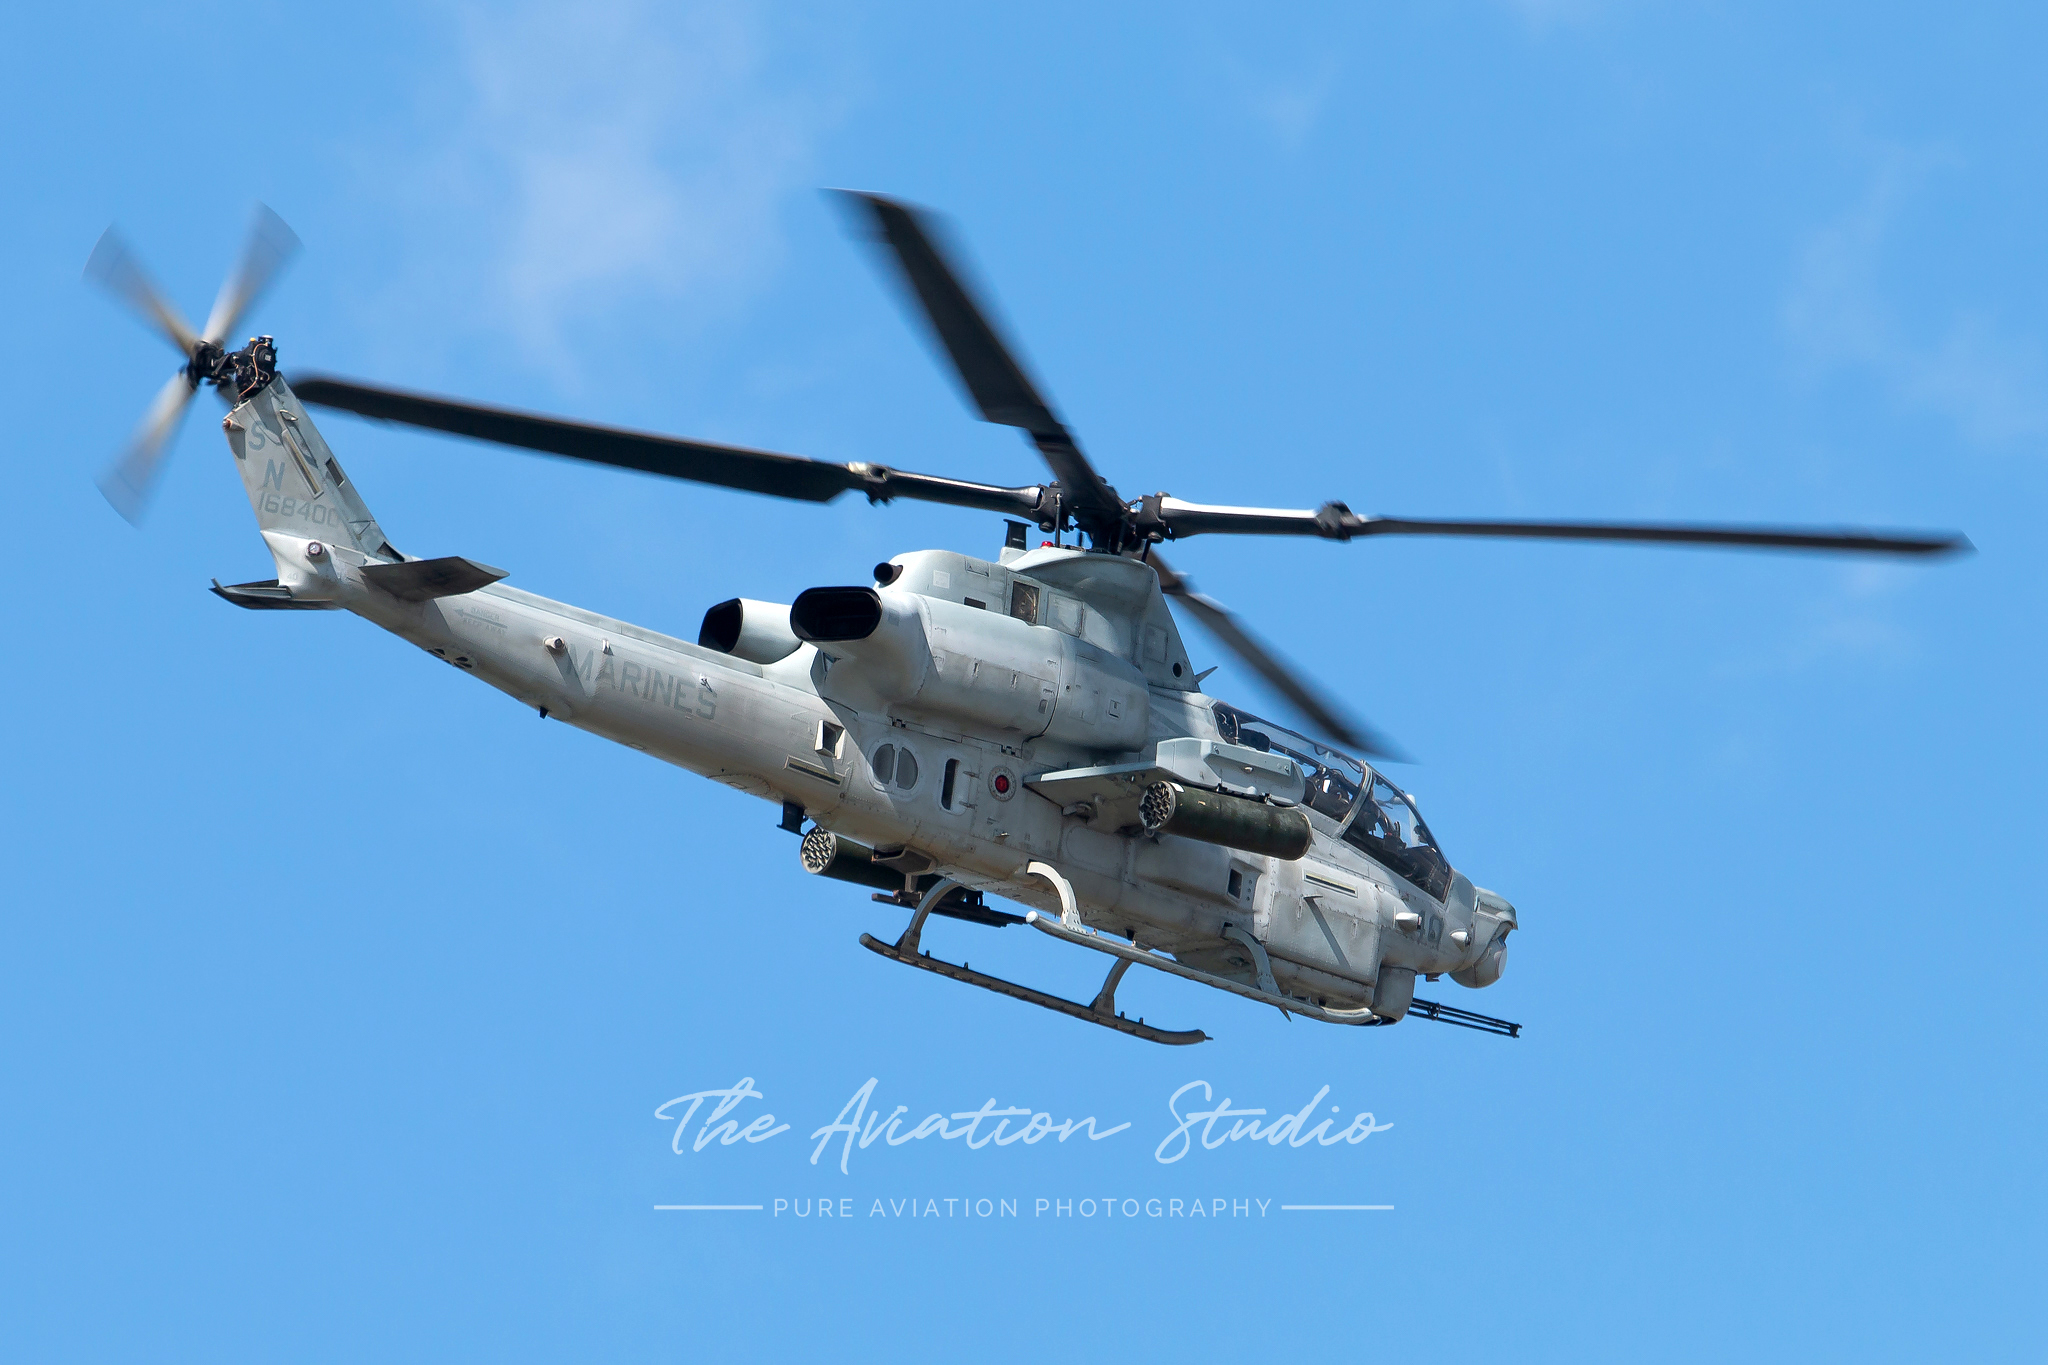 Bell AH-1Z Viper 168400 flies past Kadena on its way from MCAS Futenma (Image: Brock Little)